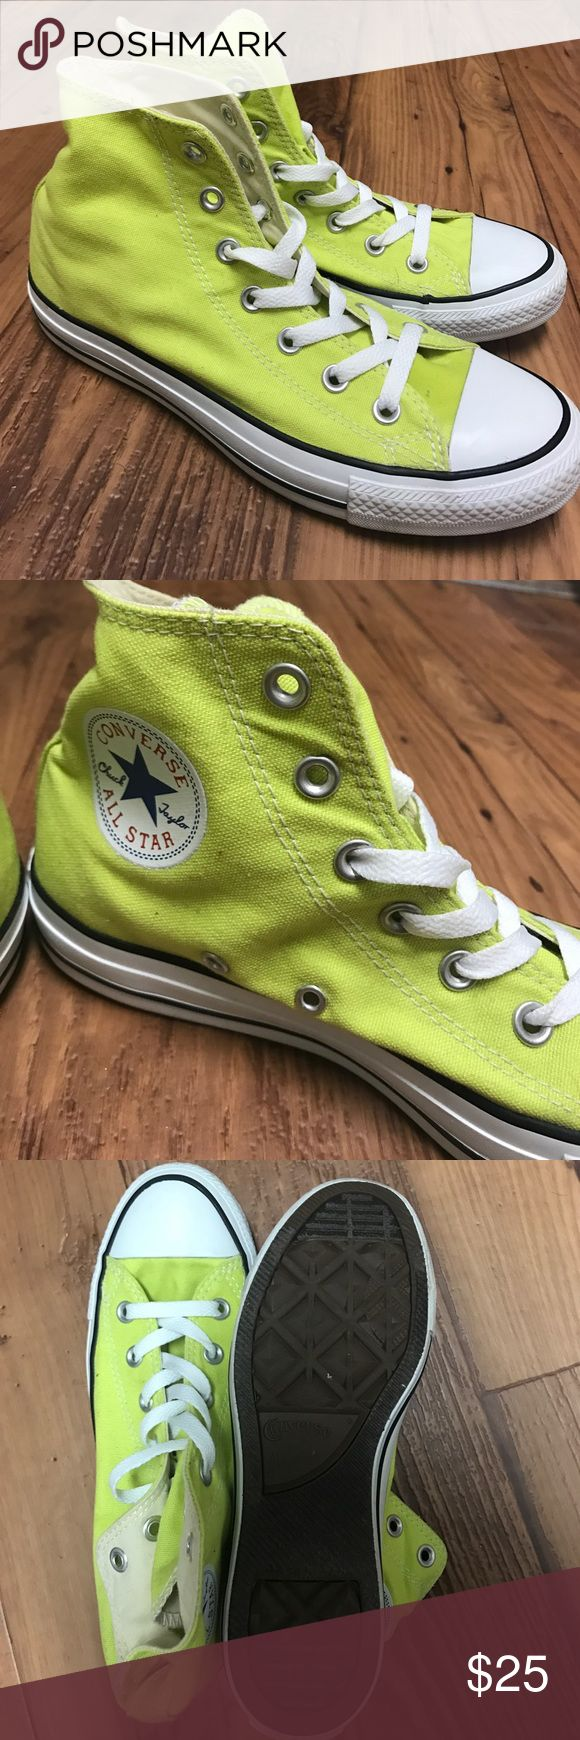 Neon High Top Converse Neon yellow High atop Converse shoes. Only worn once, in great condition! Converse Shoes Sneakers